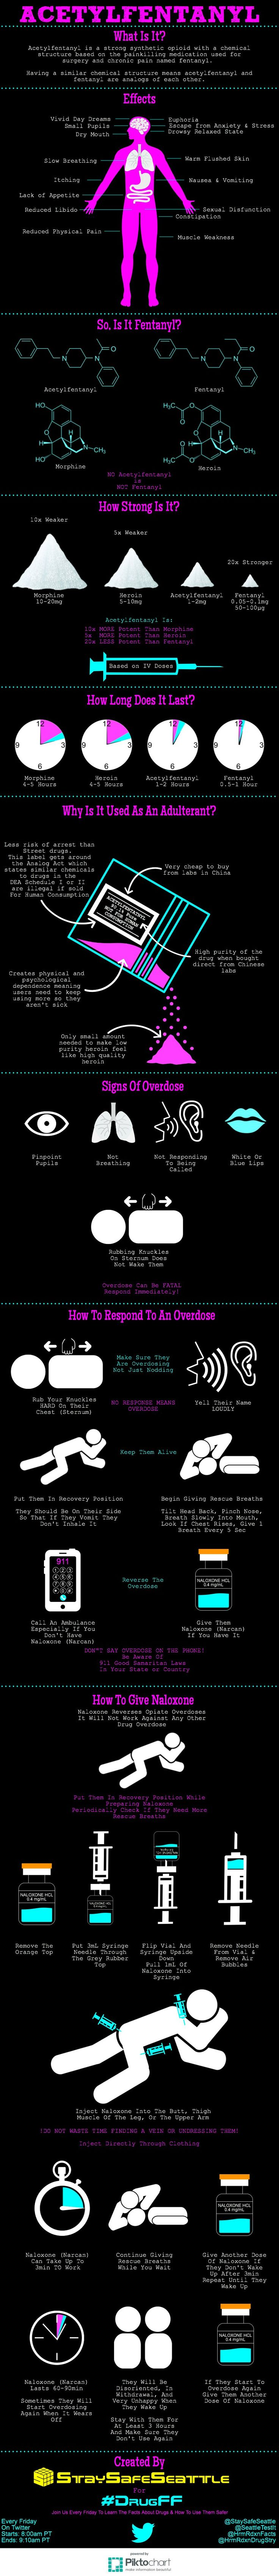 Acetylfentanyl Infographic Tags: opiate harm reduction morphine heroin fentanyl narcan naloxone overdose dose drug drugs